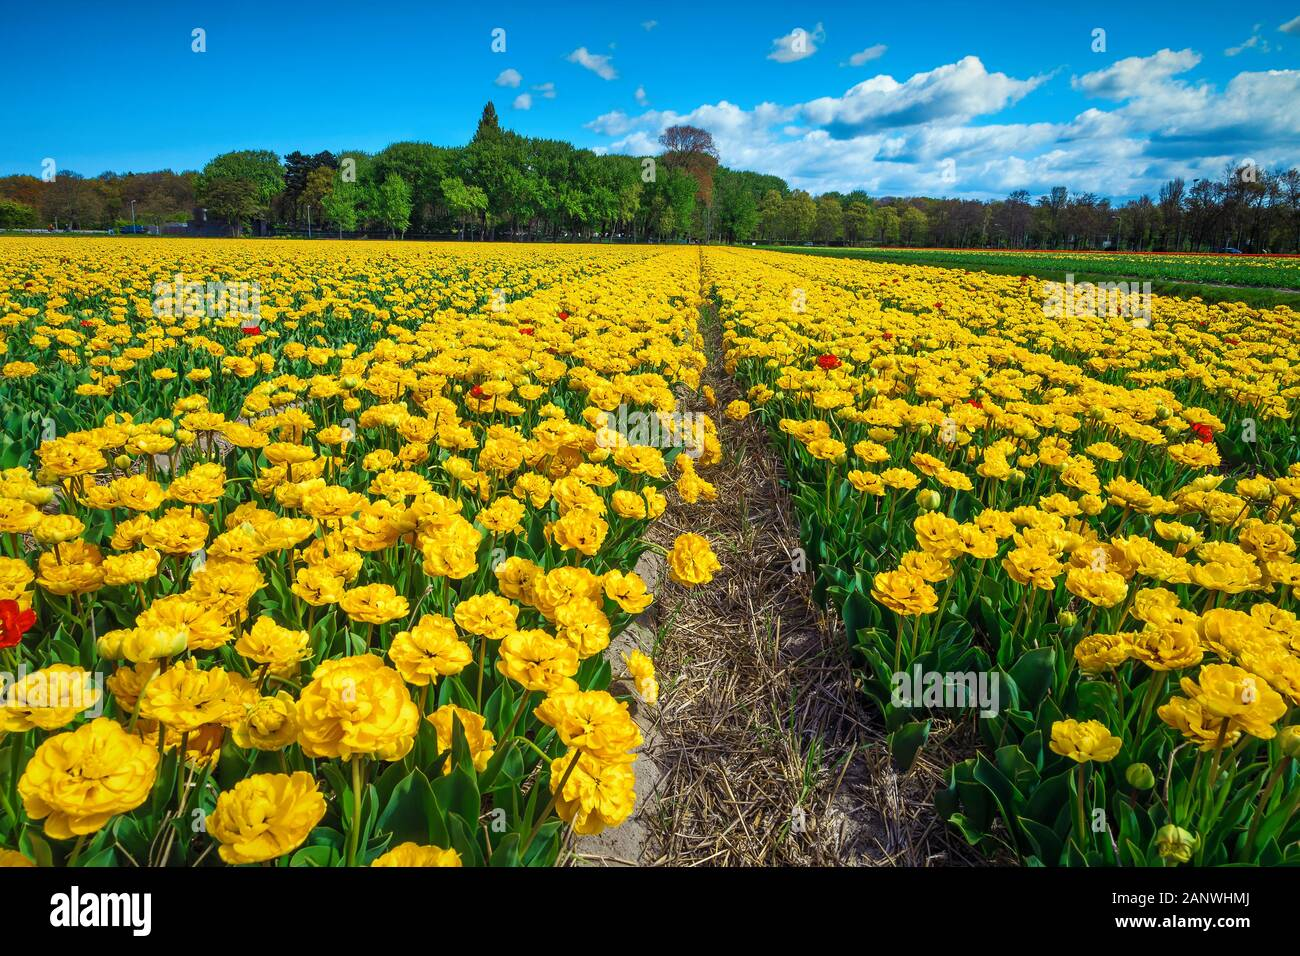 Amazing Spring Landscape With Dutch Flower Gardens And Fragrant